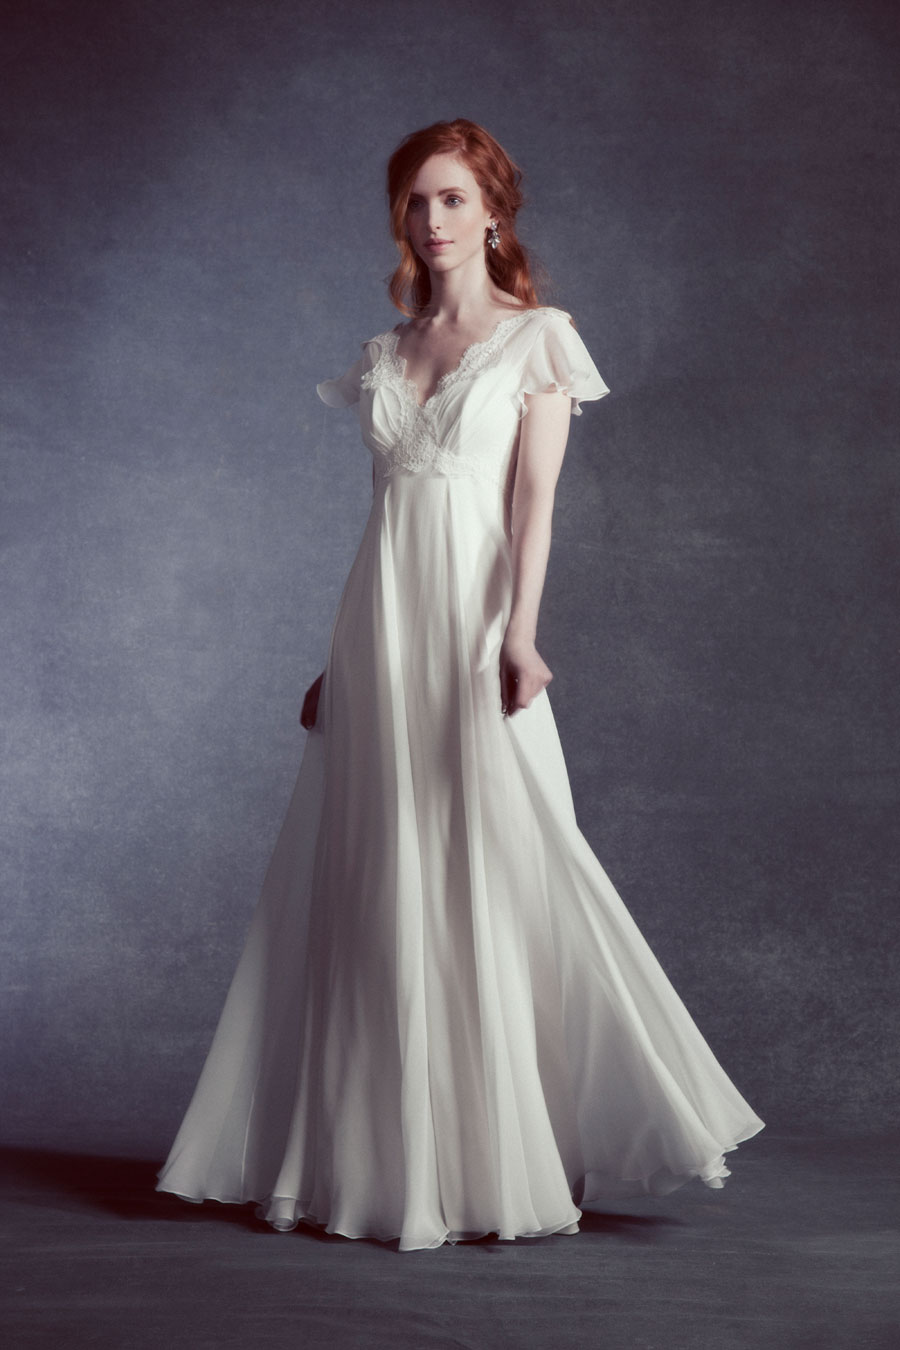 Beautiful wedding dresses the emma hunt london sample sale for Wedding dresses london sale